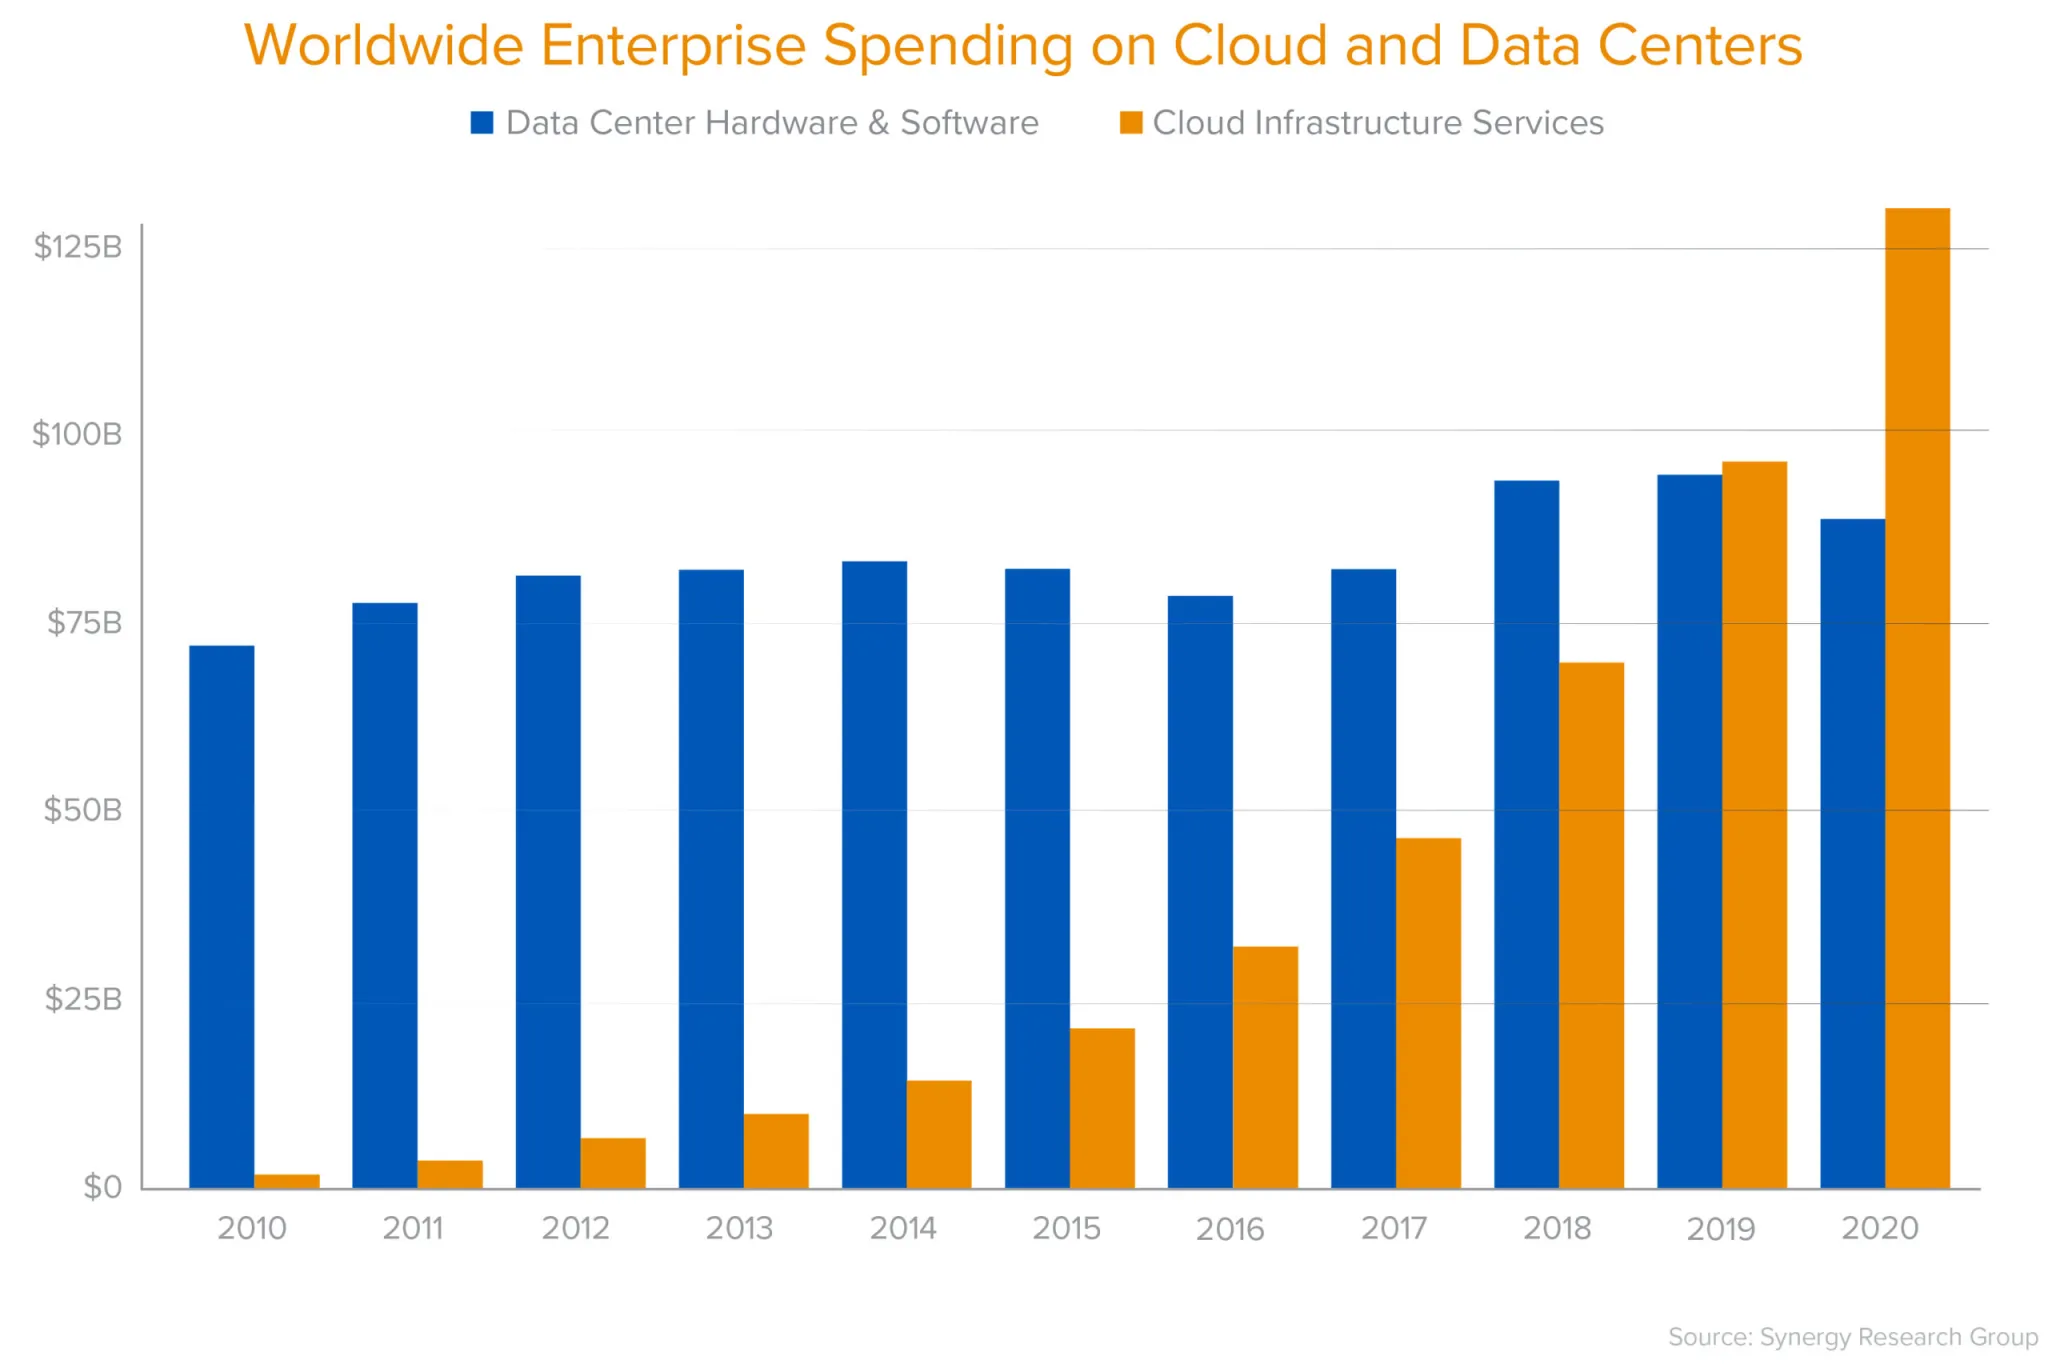 Enterprise Spending on Cloud and Data Centers